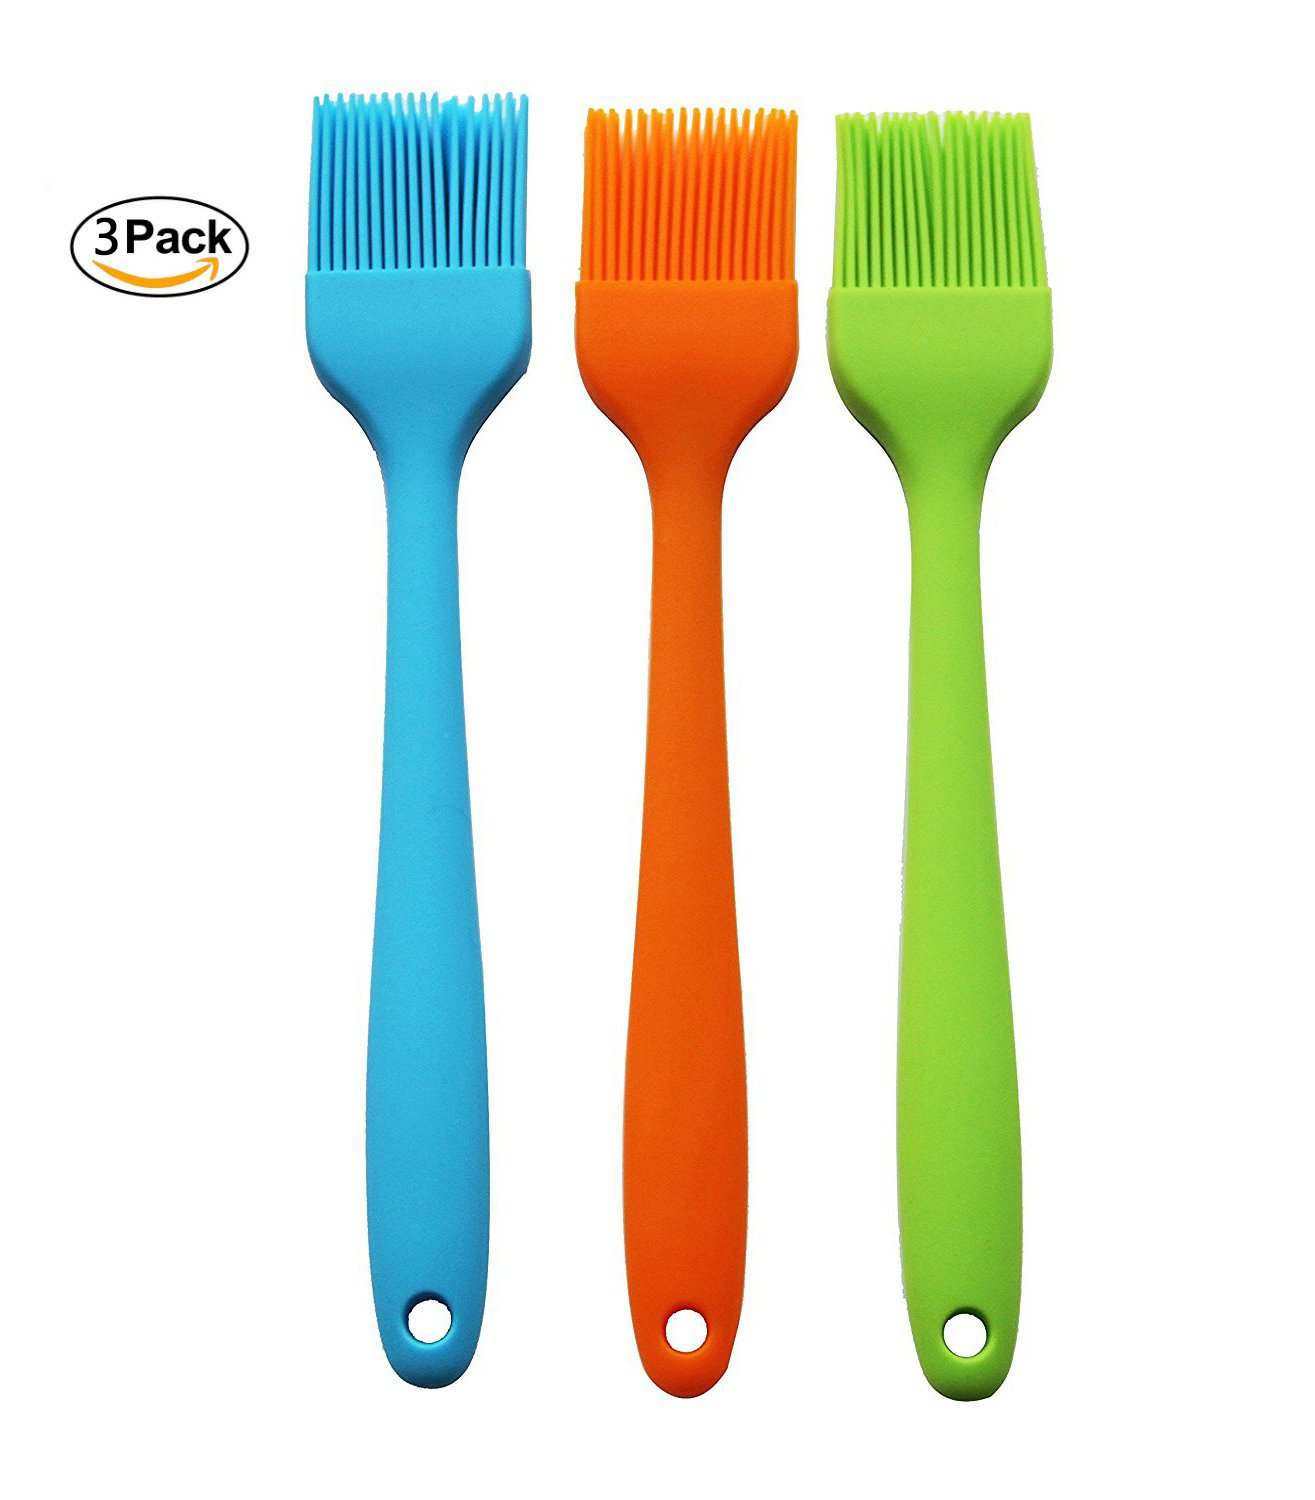 Winlux Set of 3 Silicone Basting & Pastry Brush Oil Brushes for Cake Bread Butter Baking Tools Safety Heat Resistant Barbecue Basting Brush Set 1 NO MORE HAIR IN YOUR FOOD: Our high performance flexible winlux silicone brushes are premium quality and will not melt, warp, discolor, or shrink like regular plastic or wooden brushes. The bristles will not break or shed in your food like old brushes Safe and healthy for your family - We use these utensils ourselves and want the best for our family and yours. Our FDA-grade silicone is safety-tested, heat resistant up to 480°F, and guaranteed 100% BPA-free Heat-resistant and easy on non-stick pans - you can do whatever you want, secure that it won't hurt the pan,no matter what you do.